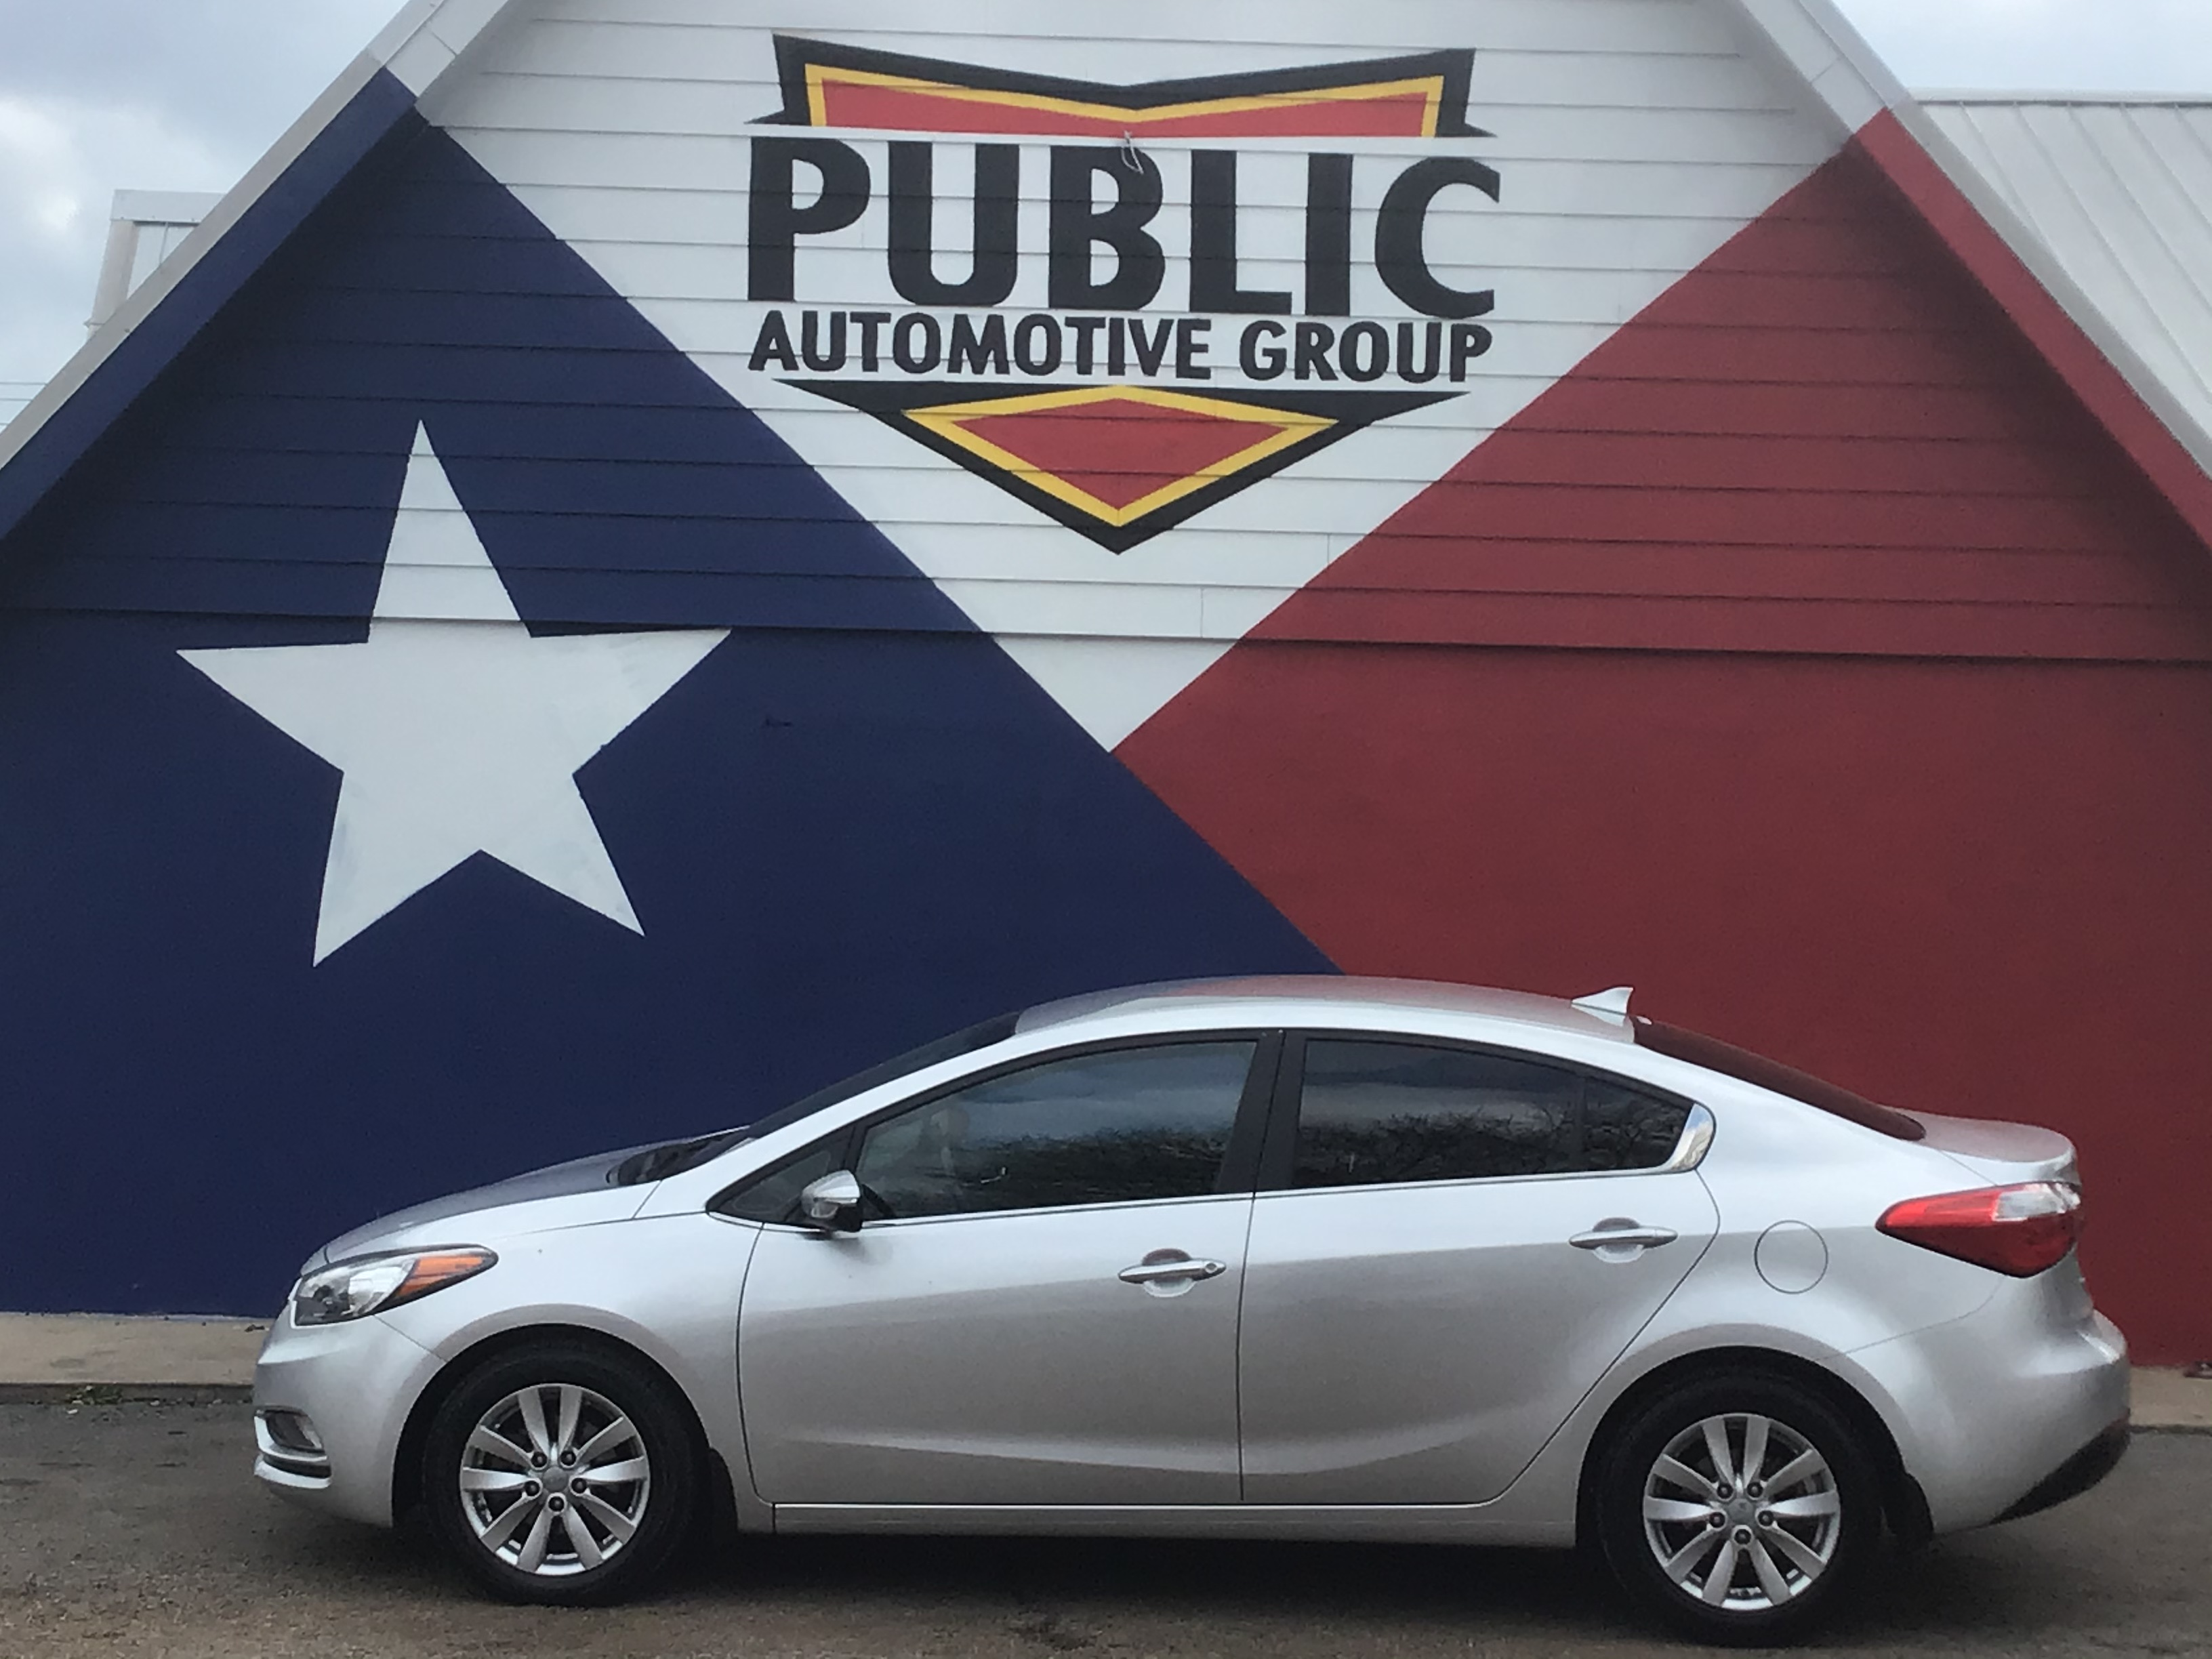 used vehicle - Sedan KIA FORTE 2014